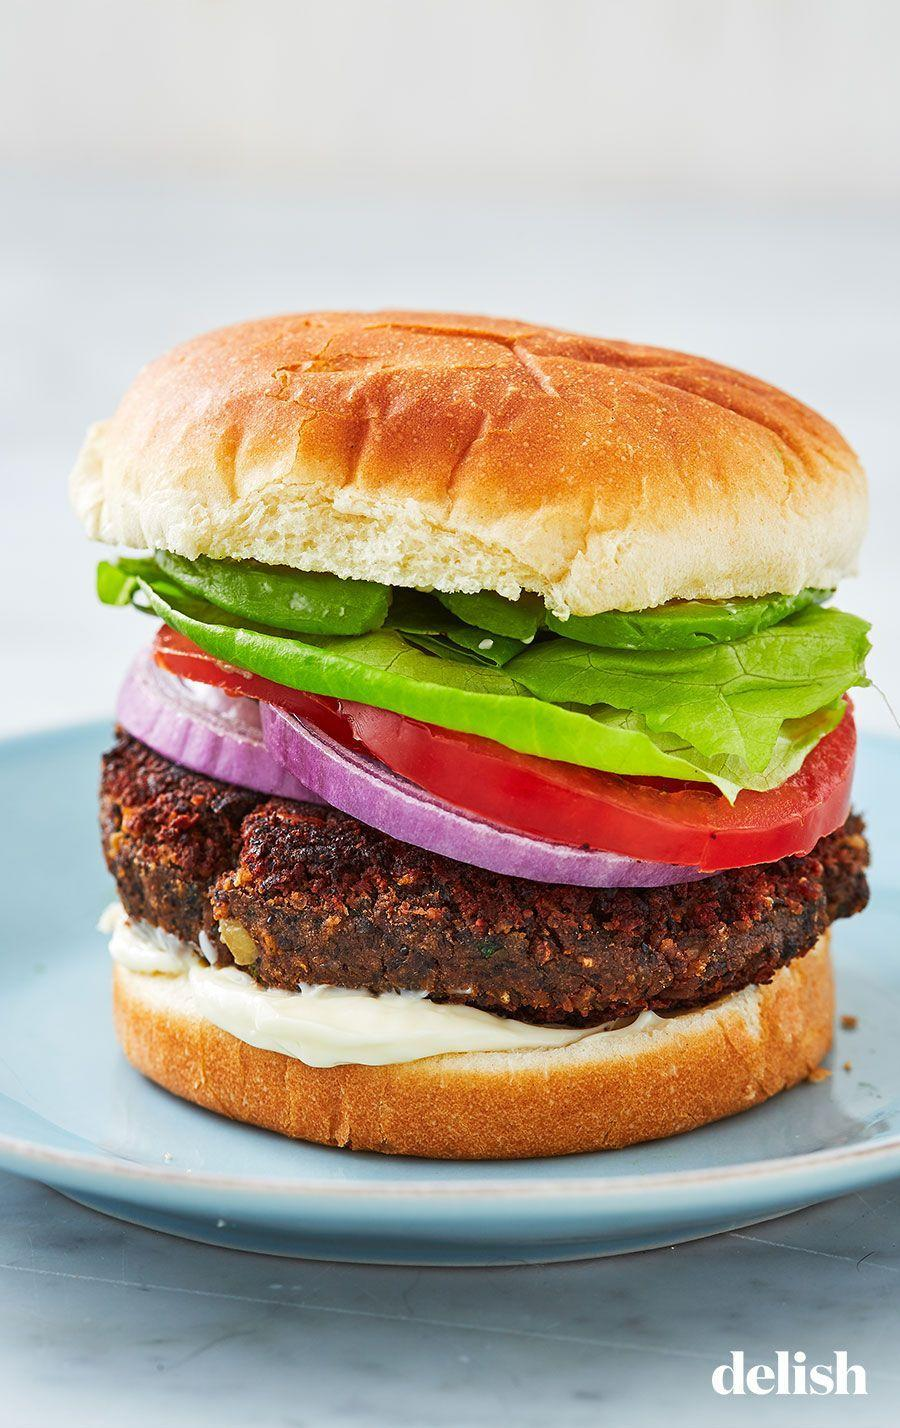 """<p>Once you make your own, you'll never go back to boxed.</p><p>Get the recipe from <a href=""""https://www.delish.com/cooking/recipe-ideas/recipes/a5658/black-bean-burgers-recipe/"""" rel=""""nofollow noopener"""" target=""""_blank"""" data-ylk=""""slk:Delish"""" class=""""link rapid-noclick-resp"""">Delish</a>.<br></p>"""